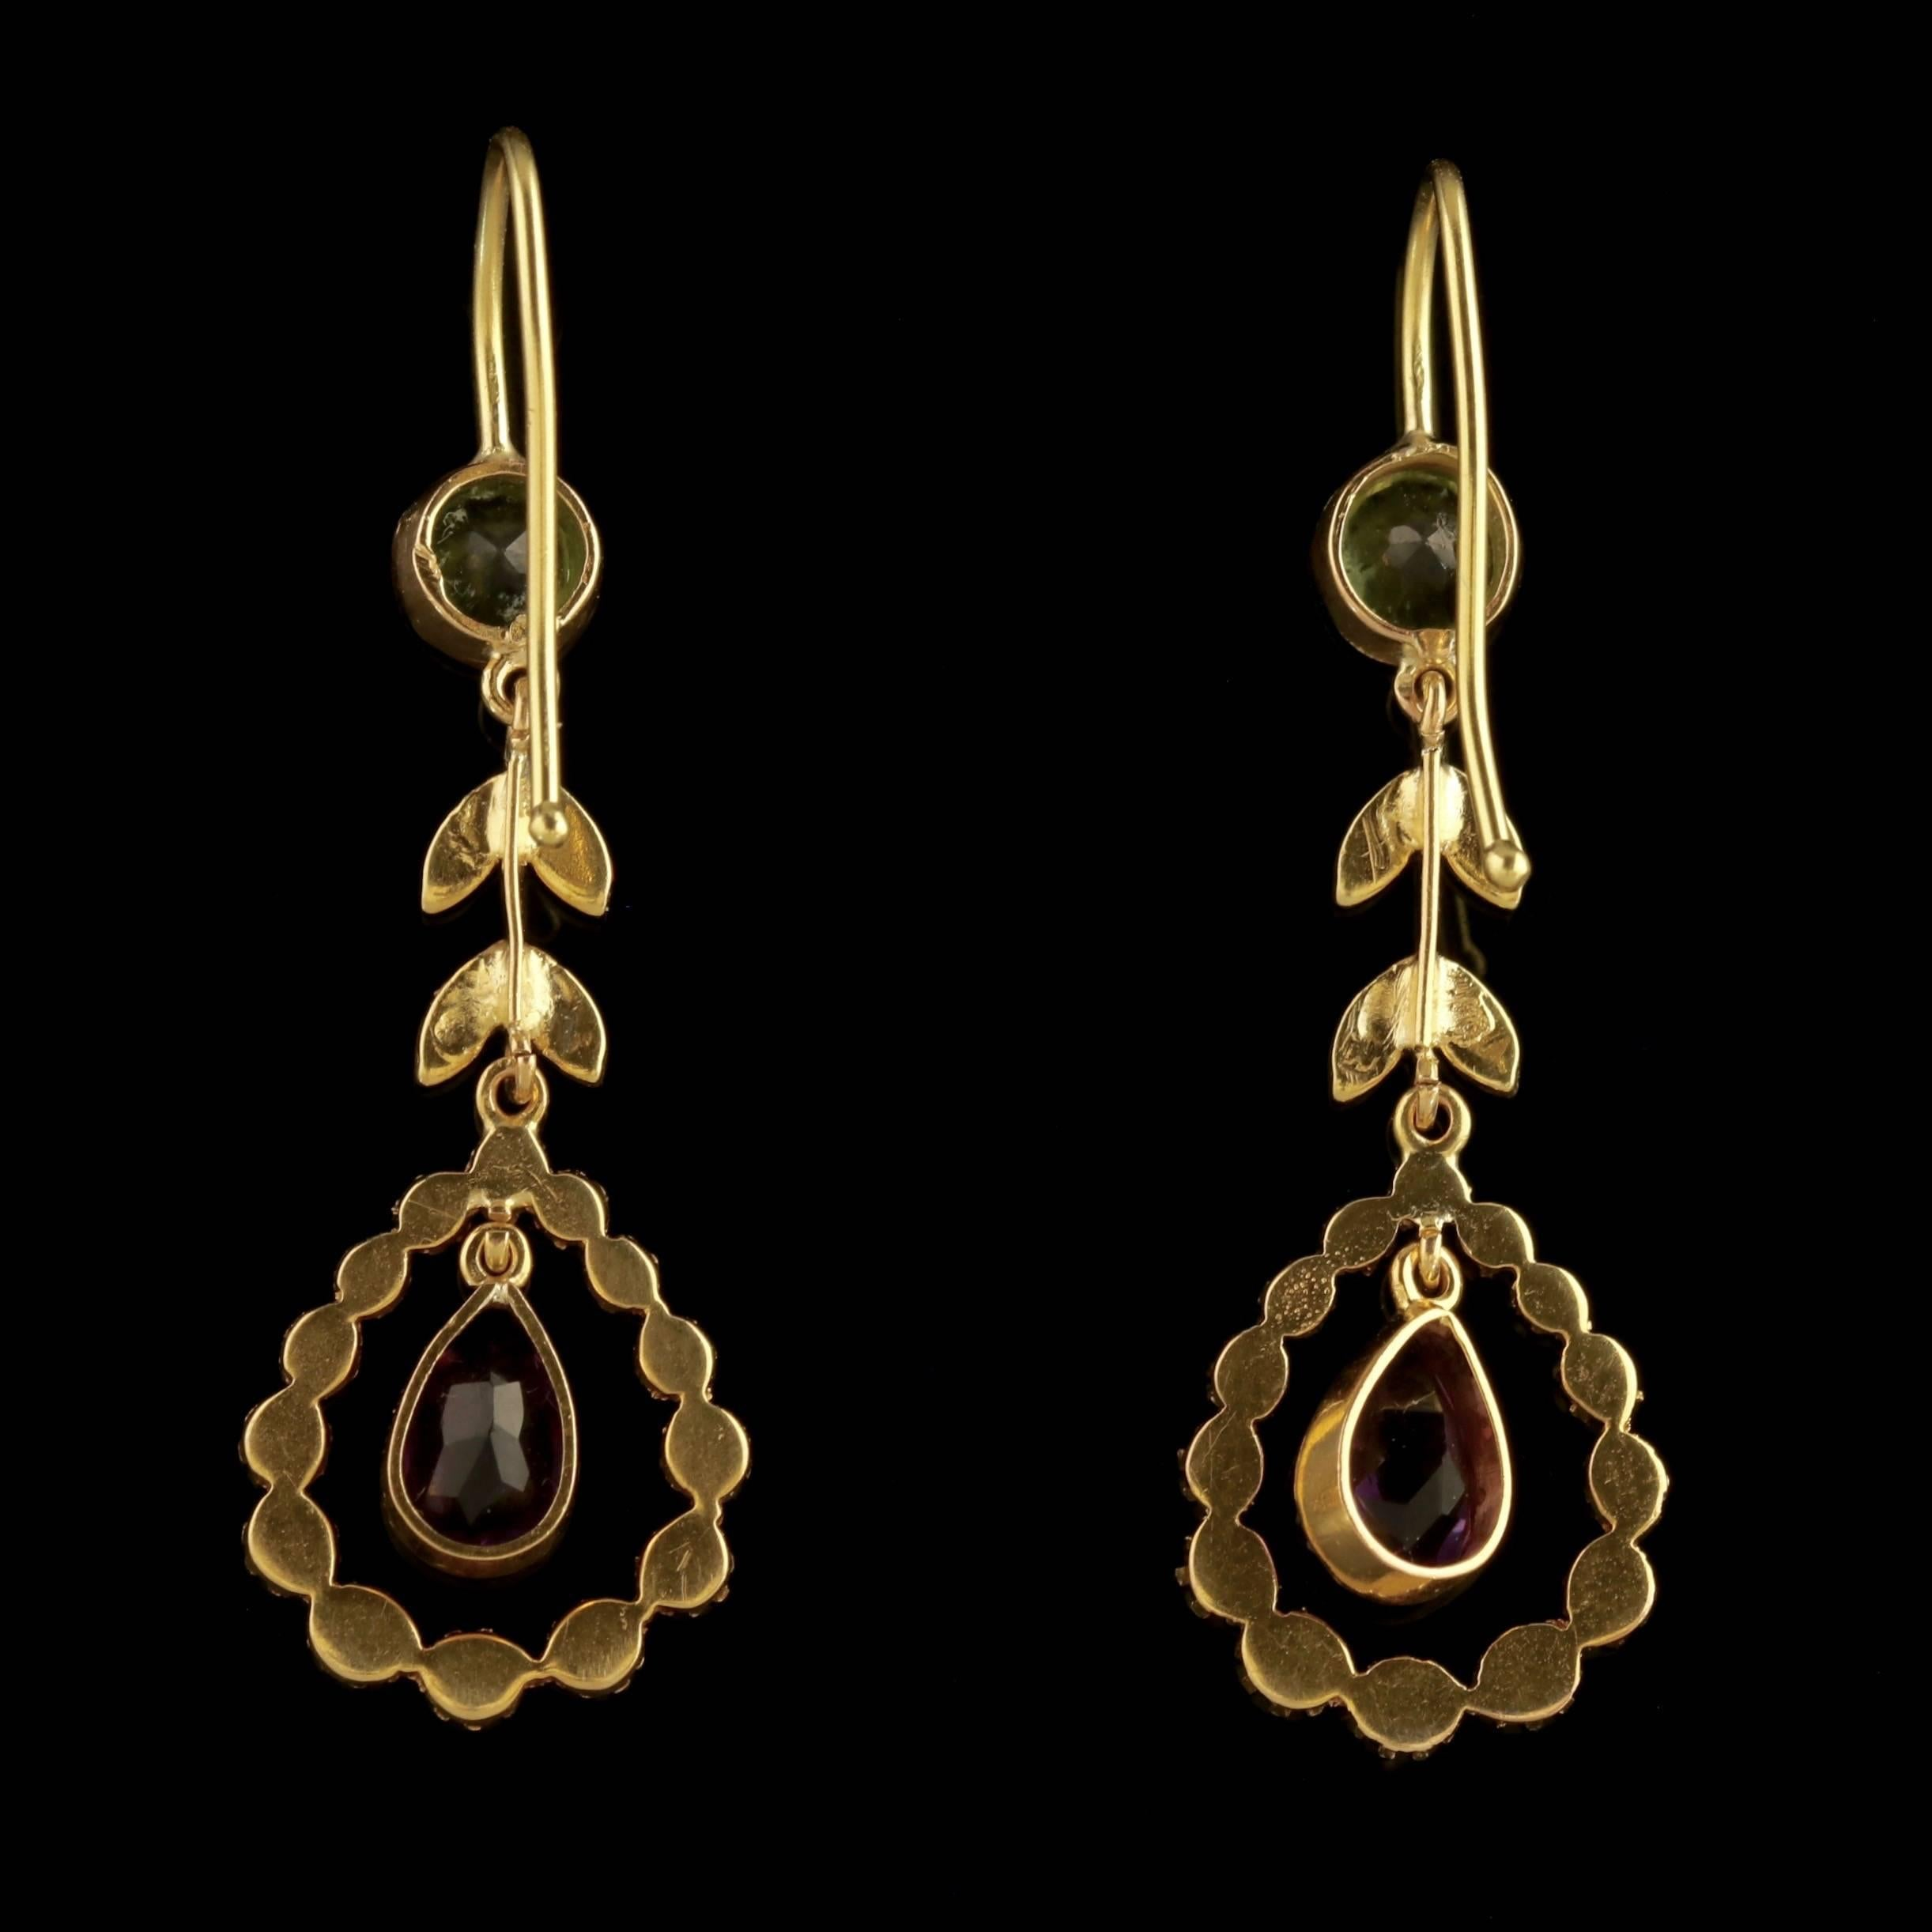 pendant earrings products victorian dangling antique ear gold cased etruscan